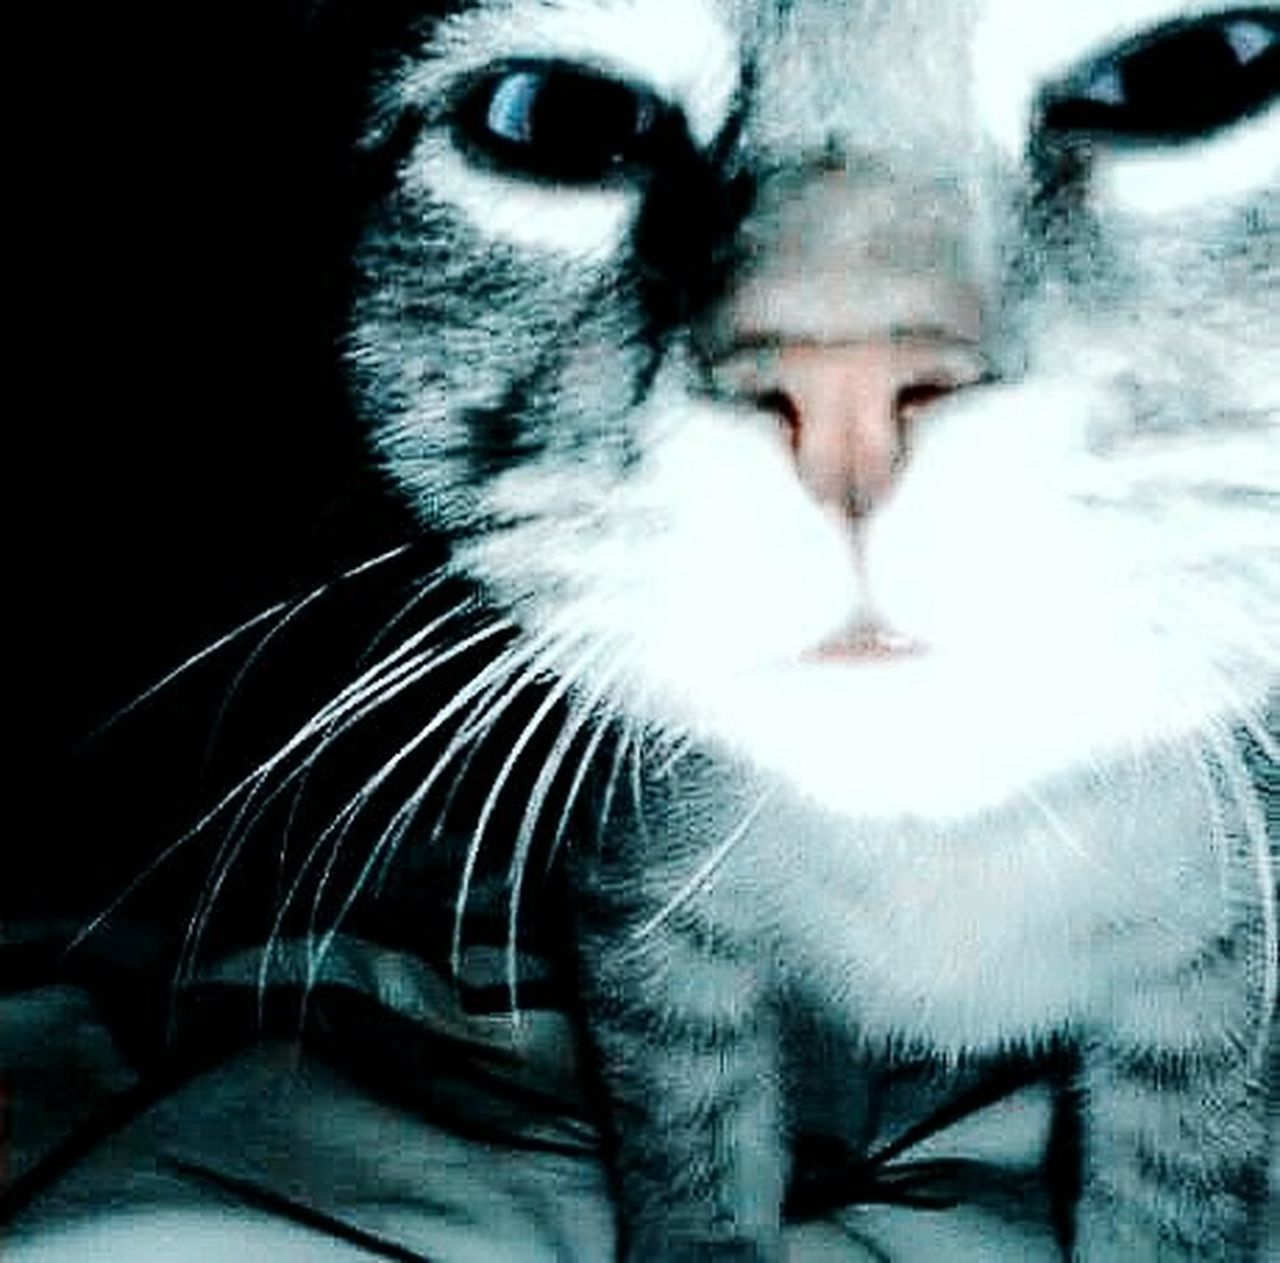 That's Devil cats.My daughter. 😨 Cat Cute Pets Cat Eyes Cute Cats Cat Lovers Cats Of EyeEm Cat Watching Eyeem Nice Shots